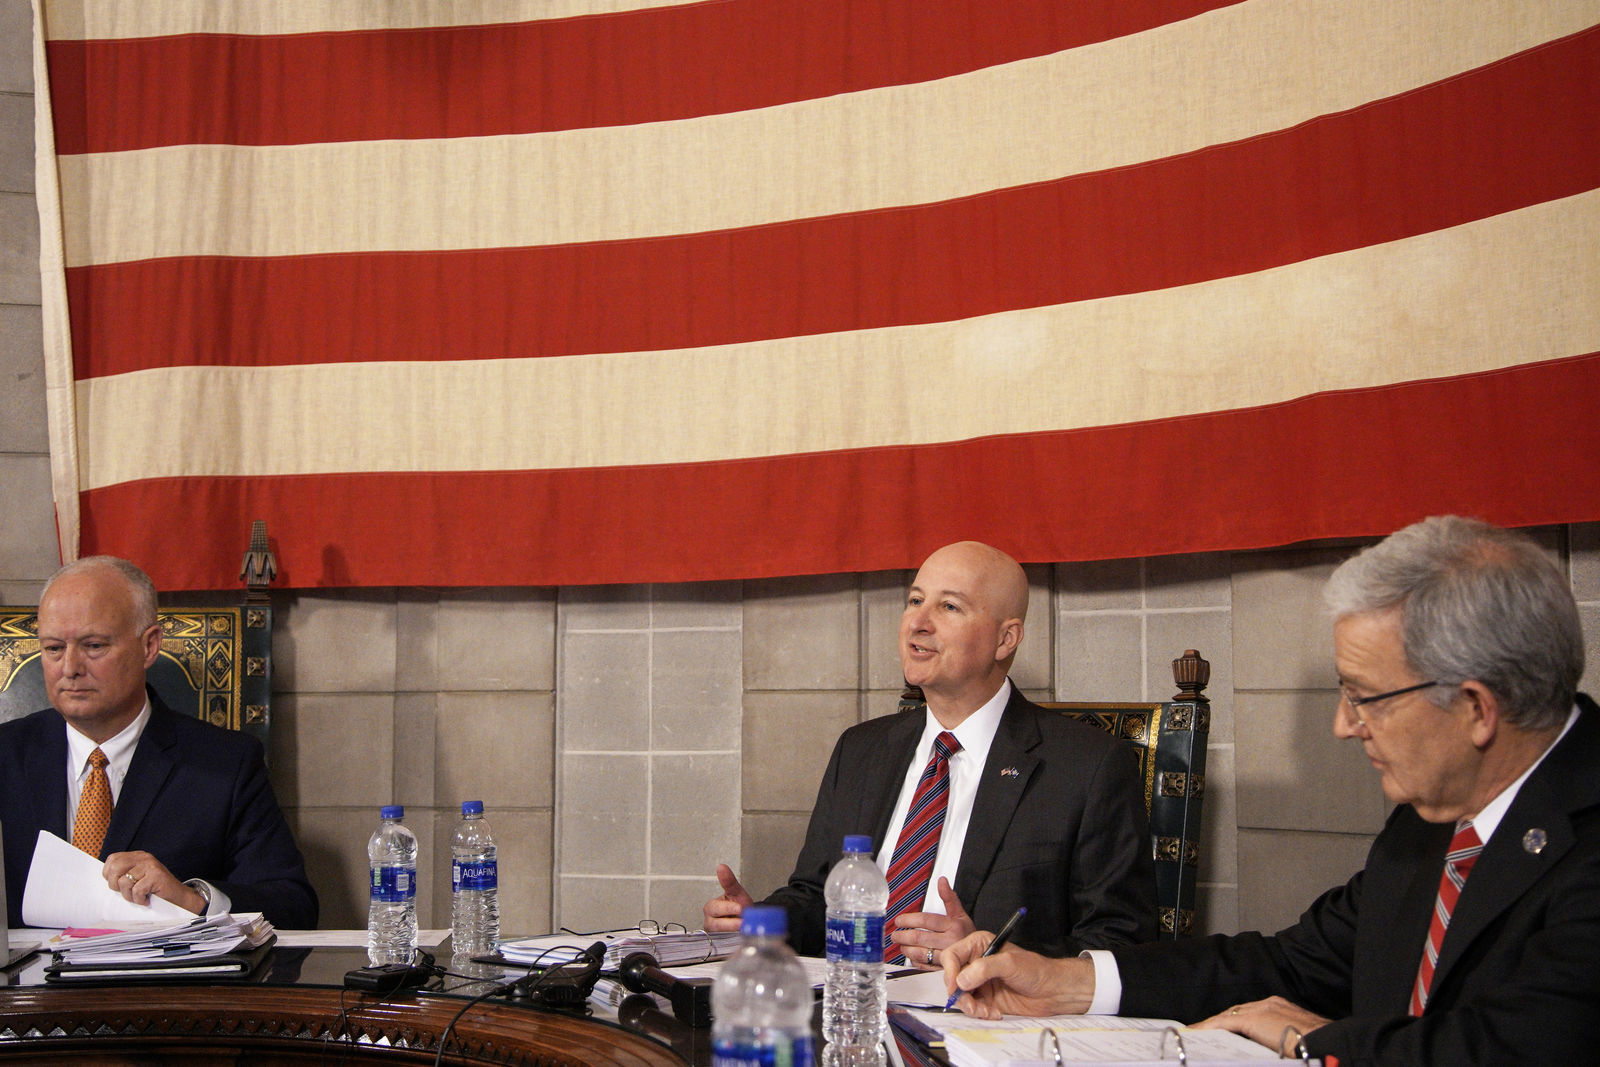 Neb. Gov. Pete Ricketts, center, resides over the Board of Pardons in Lincoln, Neb., Tuesday, Feb. 18, 2020, with Neb. Sect. of State Robert Evnen, right, and Neb. Attorney General Doug Peterson, left, to consider a request for clemency from Caril Ann Clair, the 76-year-old former girlfriend of Charles Starkweather, who went on an infamous killing spree in Nebraska and Wyoming in the late 1950s. The pardon board voted 3-0 to deny the application from Caril Ann Fugate, even though some relatives of Starkweather's victims lobbied in her favor. (AP Photo/Nati Harnik)